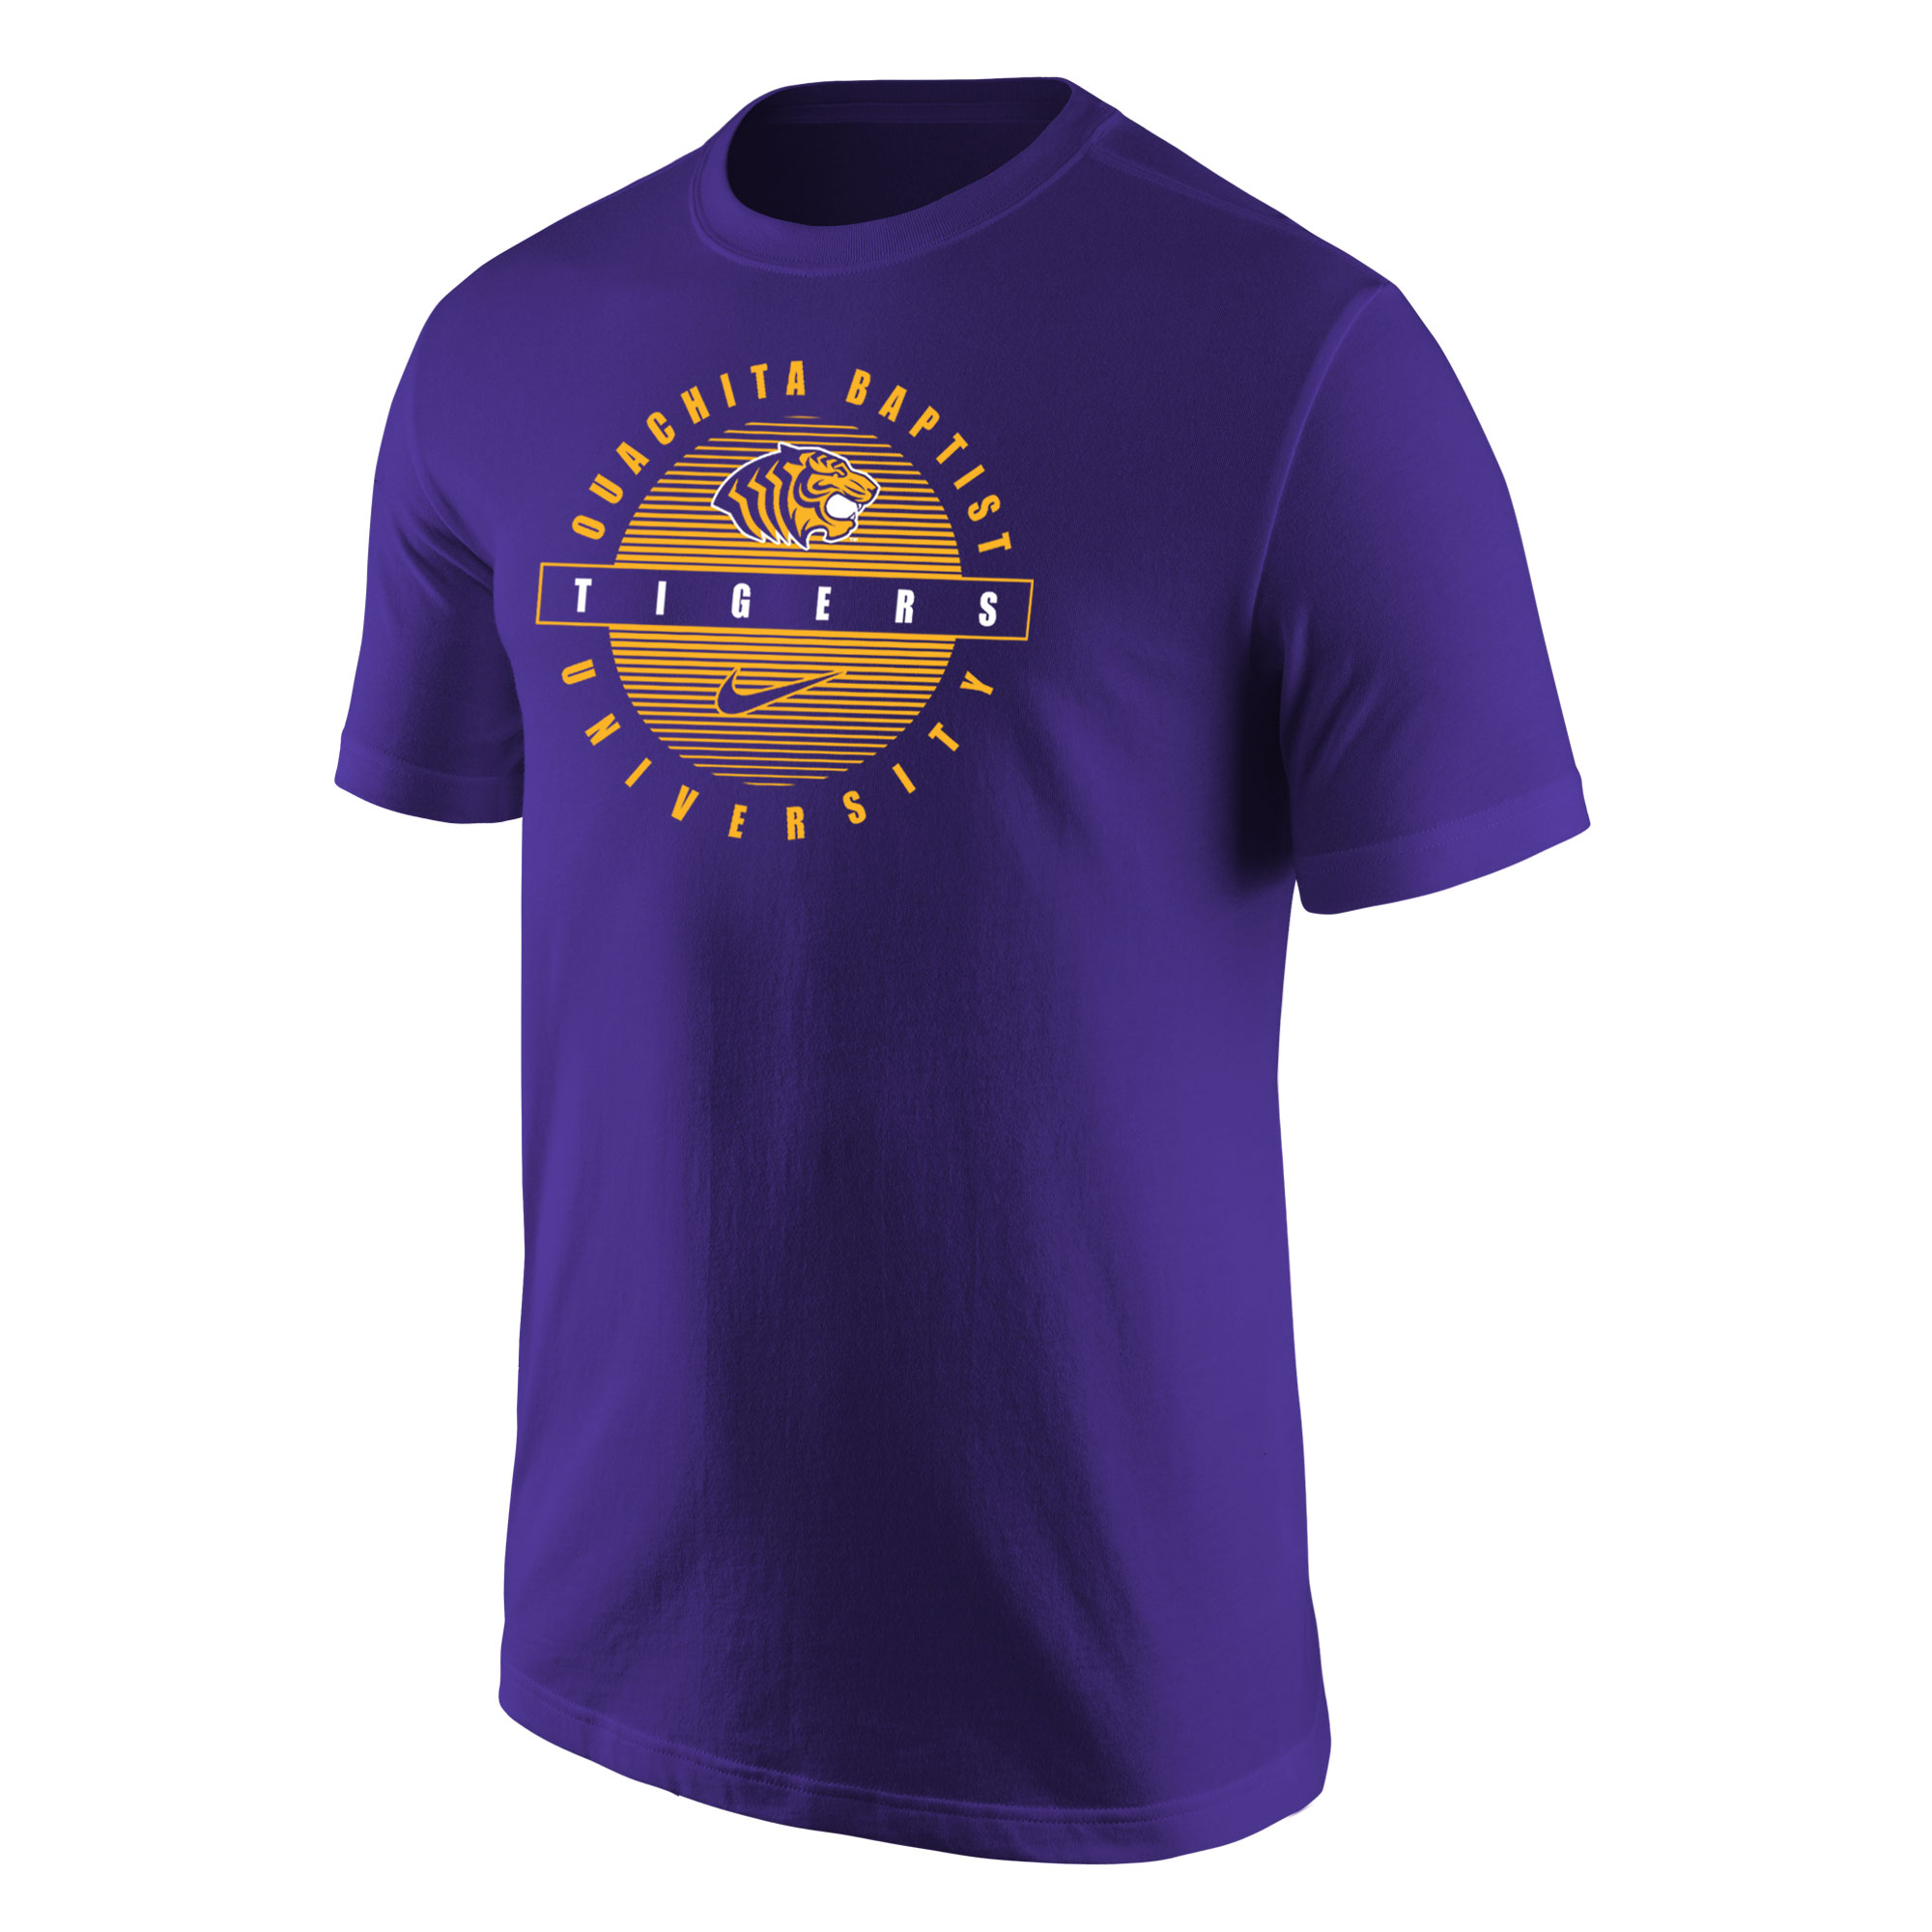 OUACHITA BAPTIST UNIVERISTY TIGERS NIKE CORE SS TEE